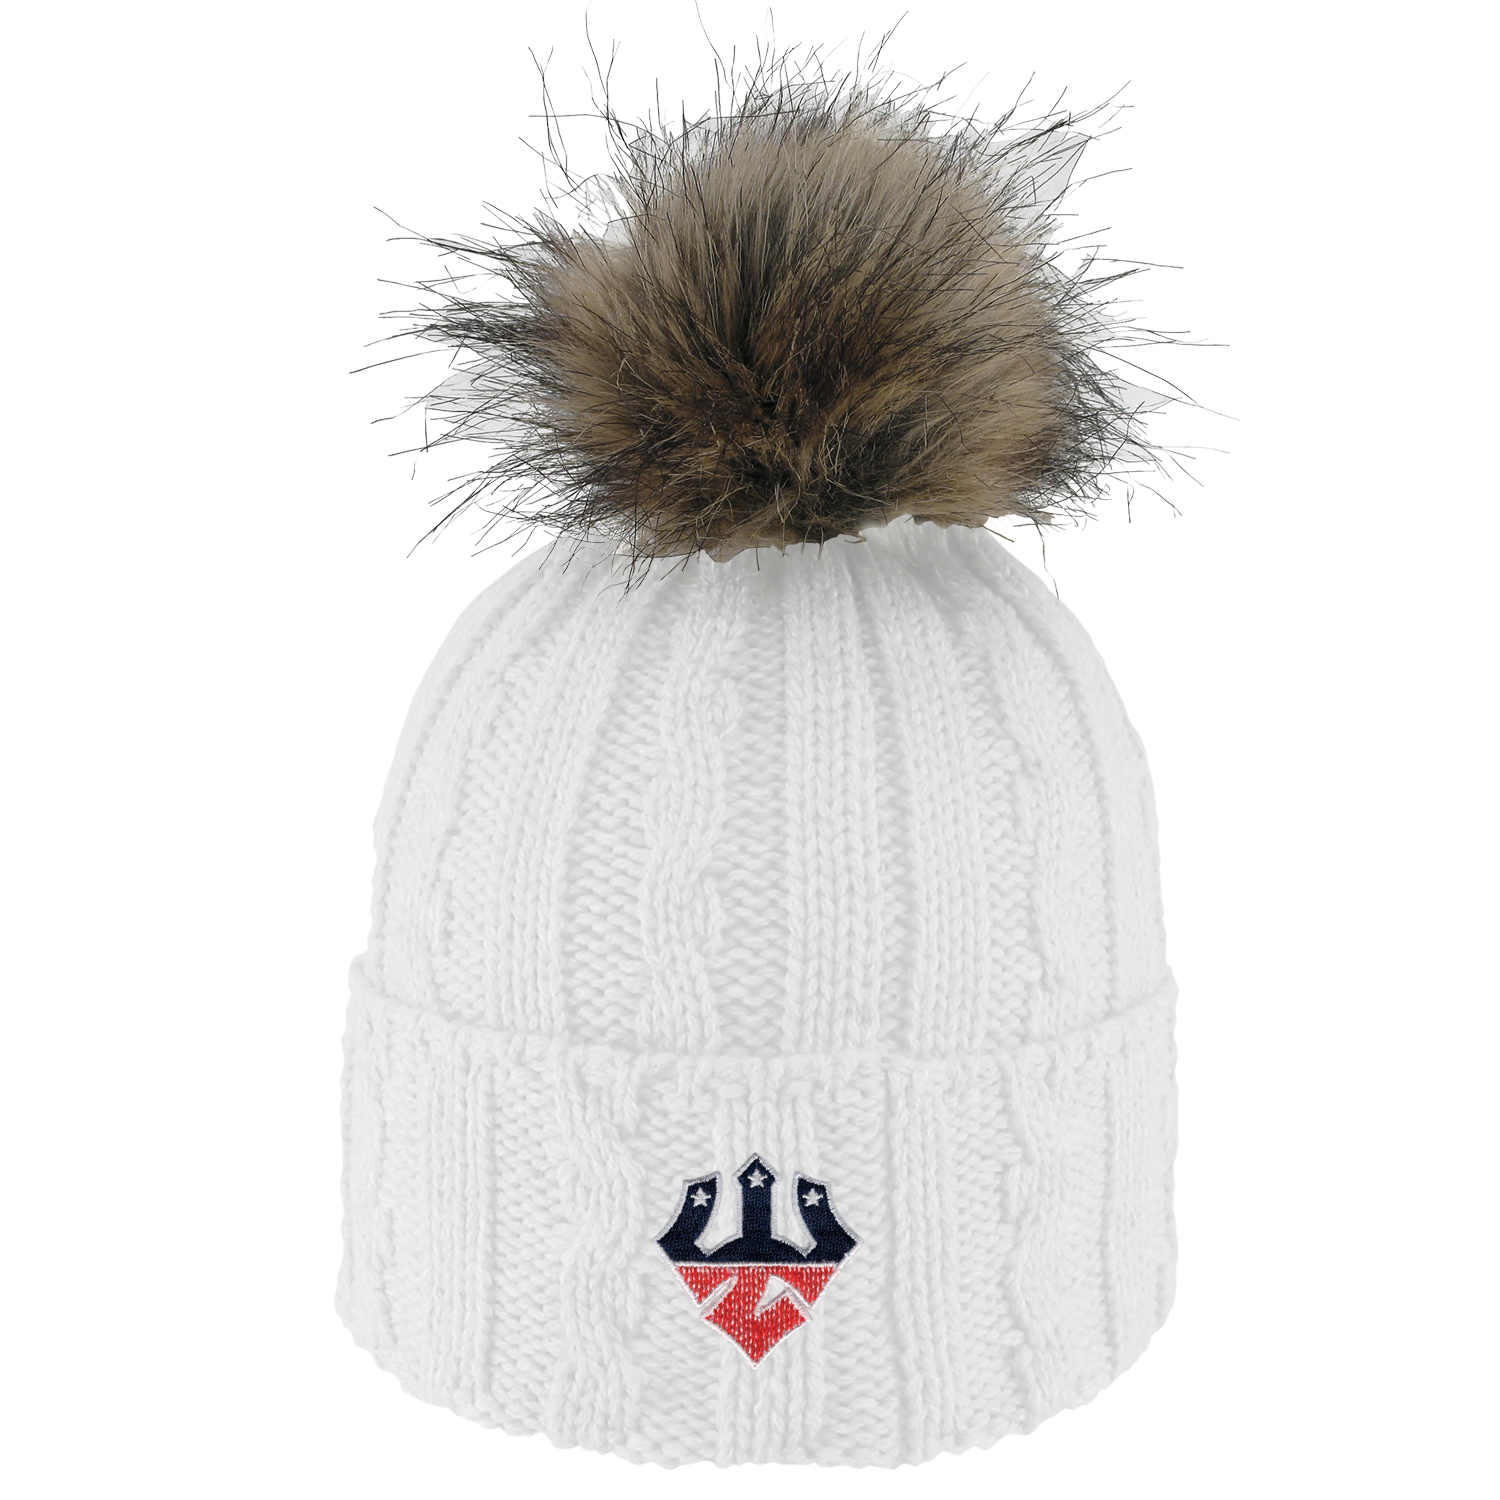 Image For Mock Con Trident Knit Hat with Faux Fur, White